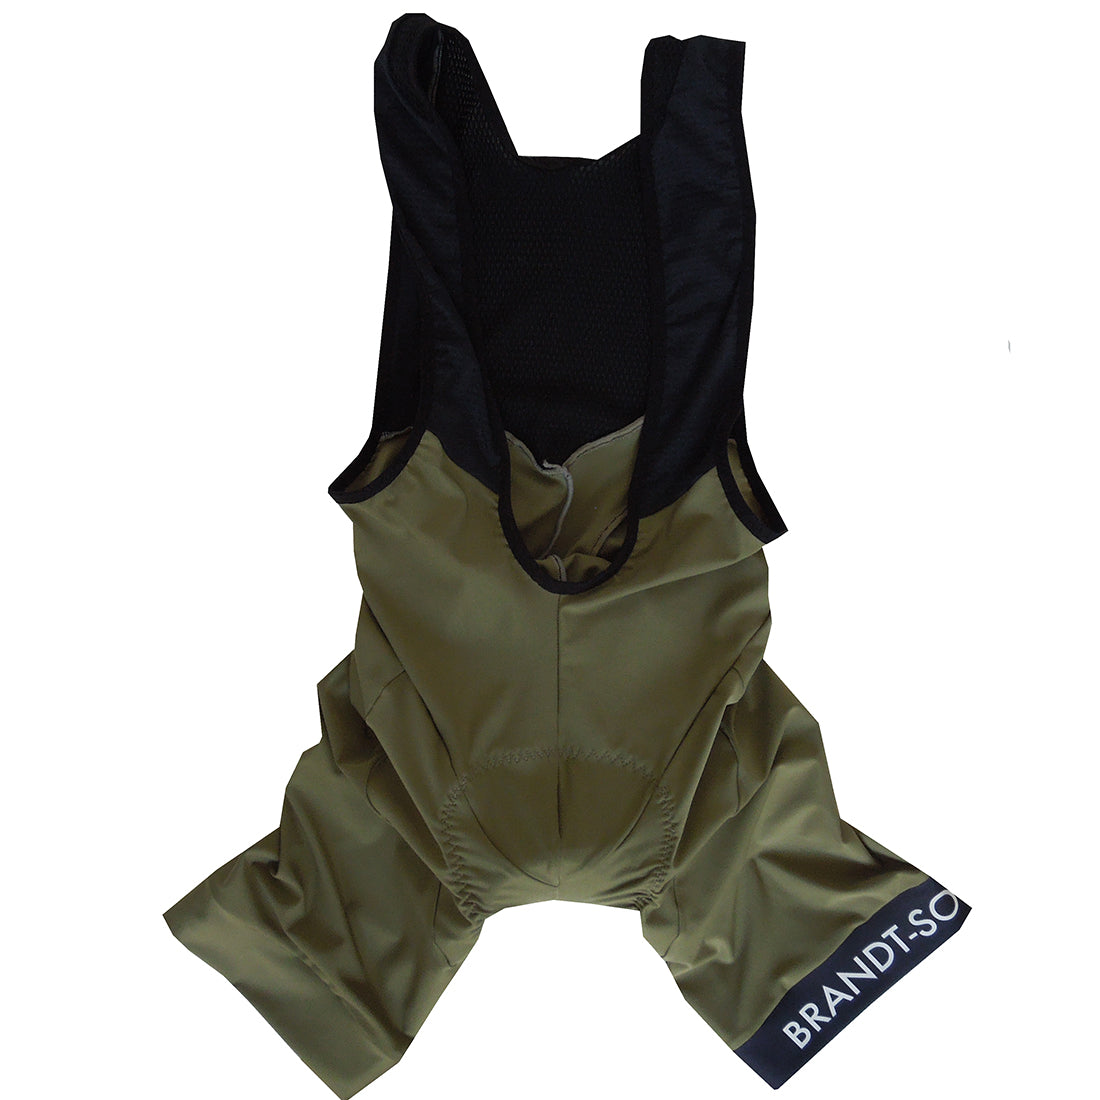 Luxury Bib Shorts: Moss Green